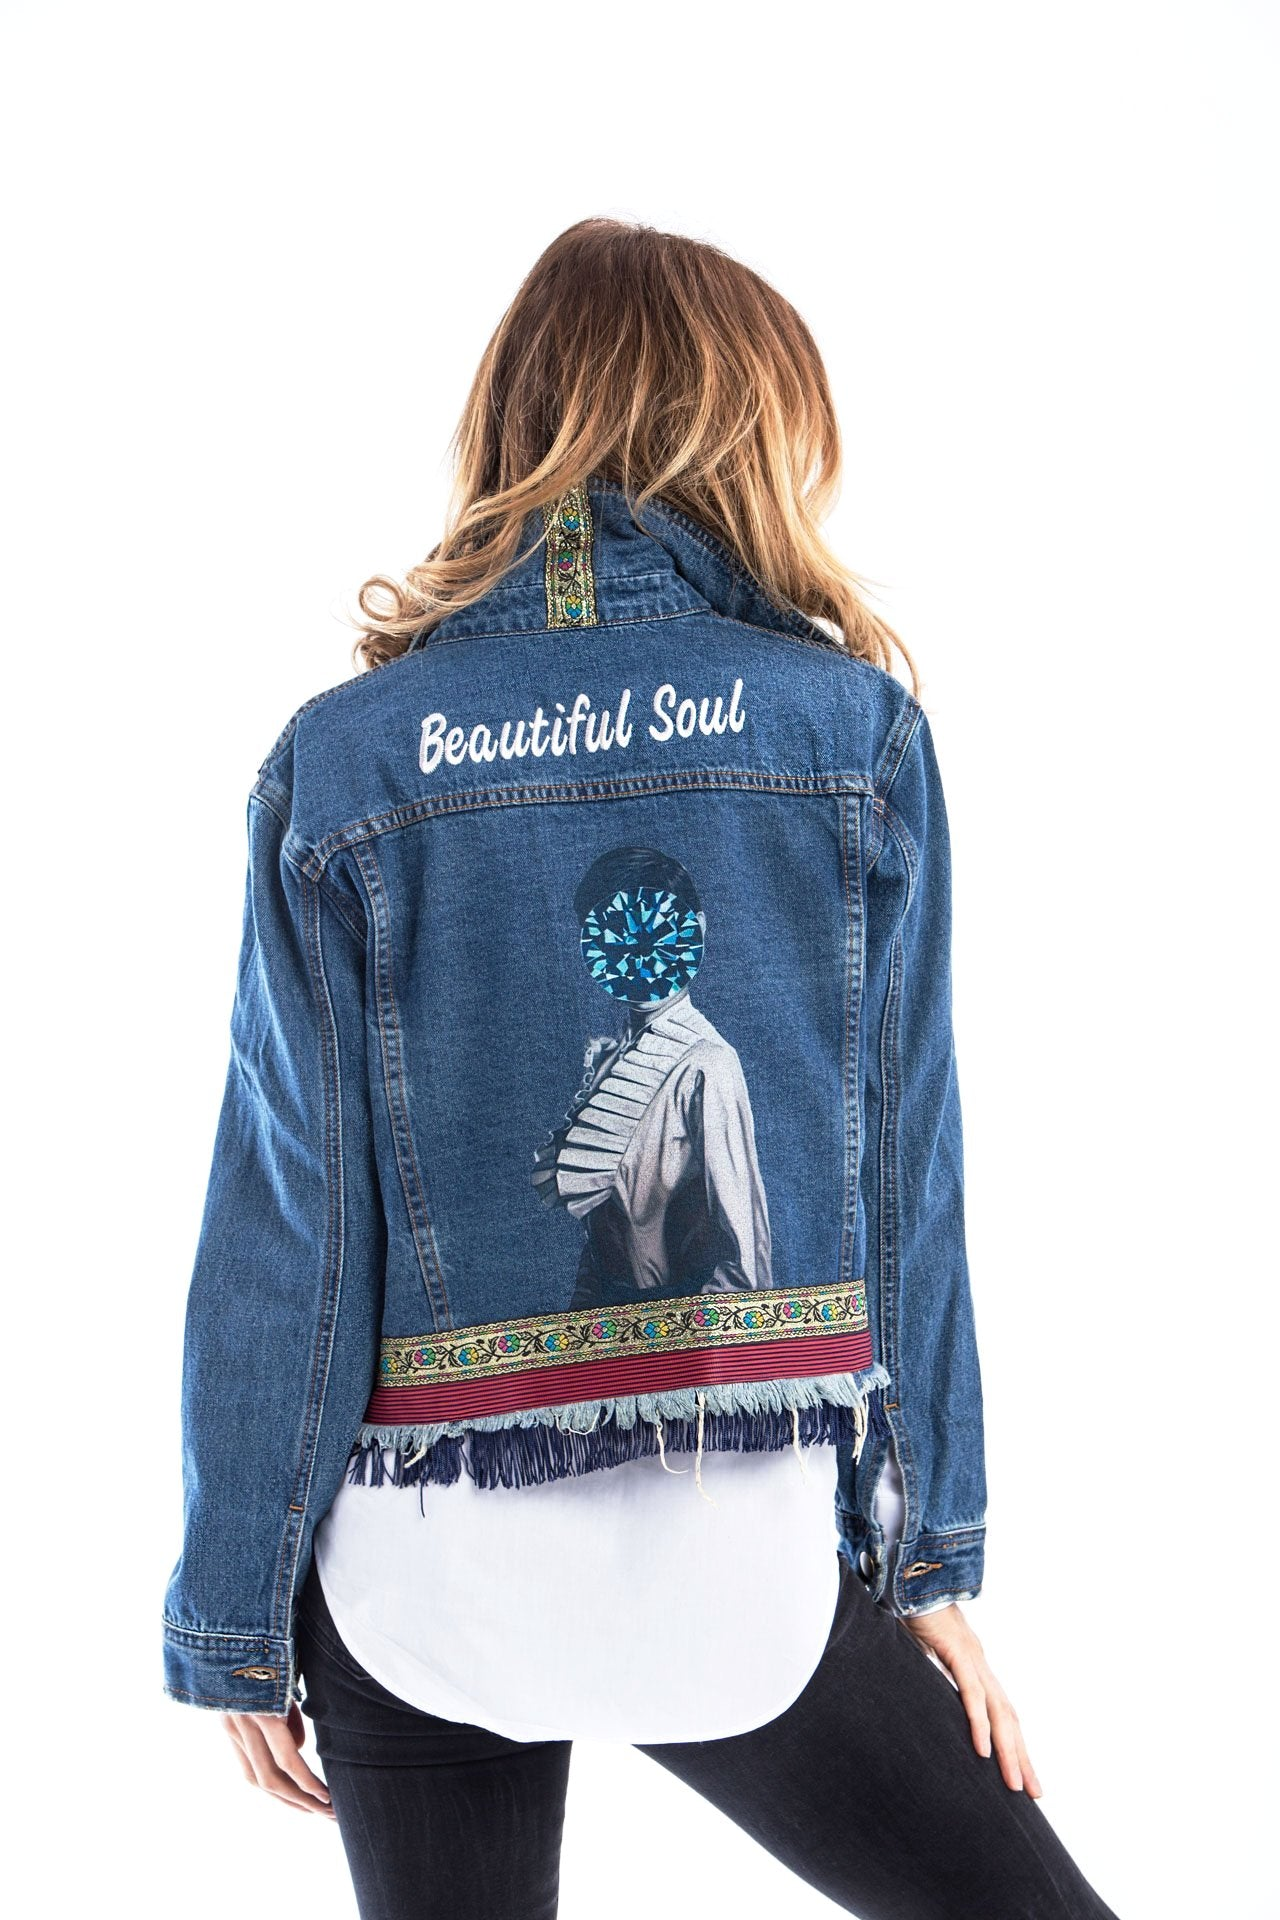 Beautiful Soul Denim Jacket Denim Jackets - artTECA